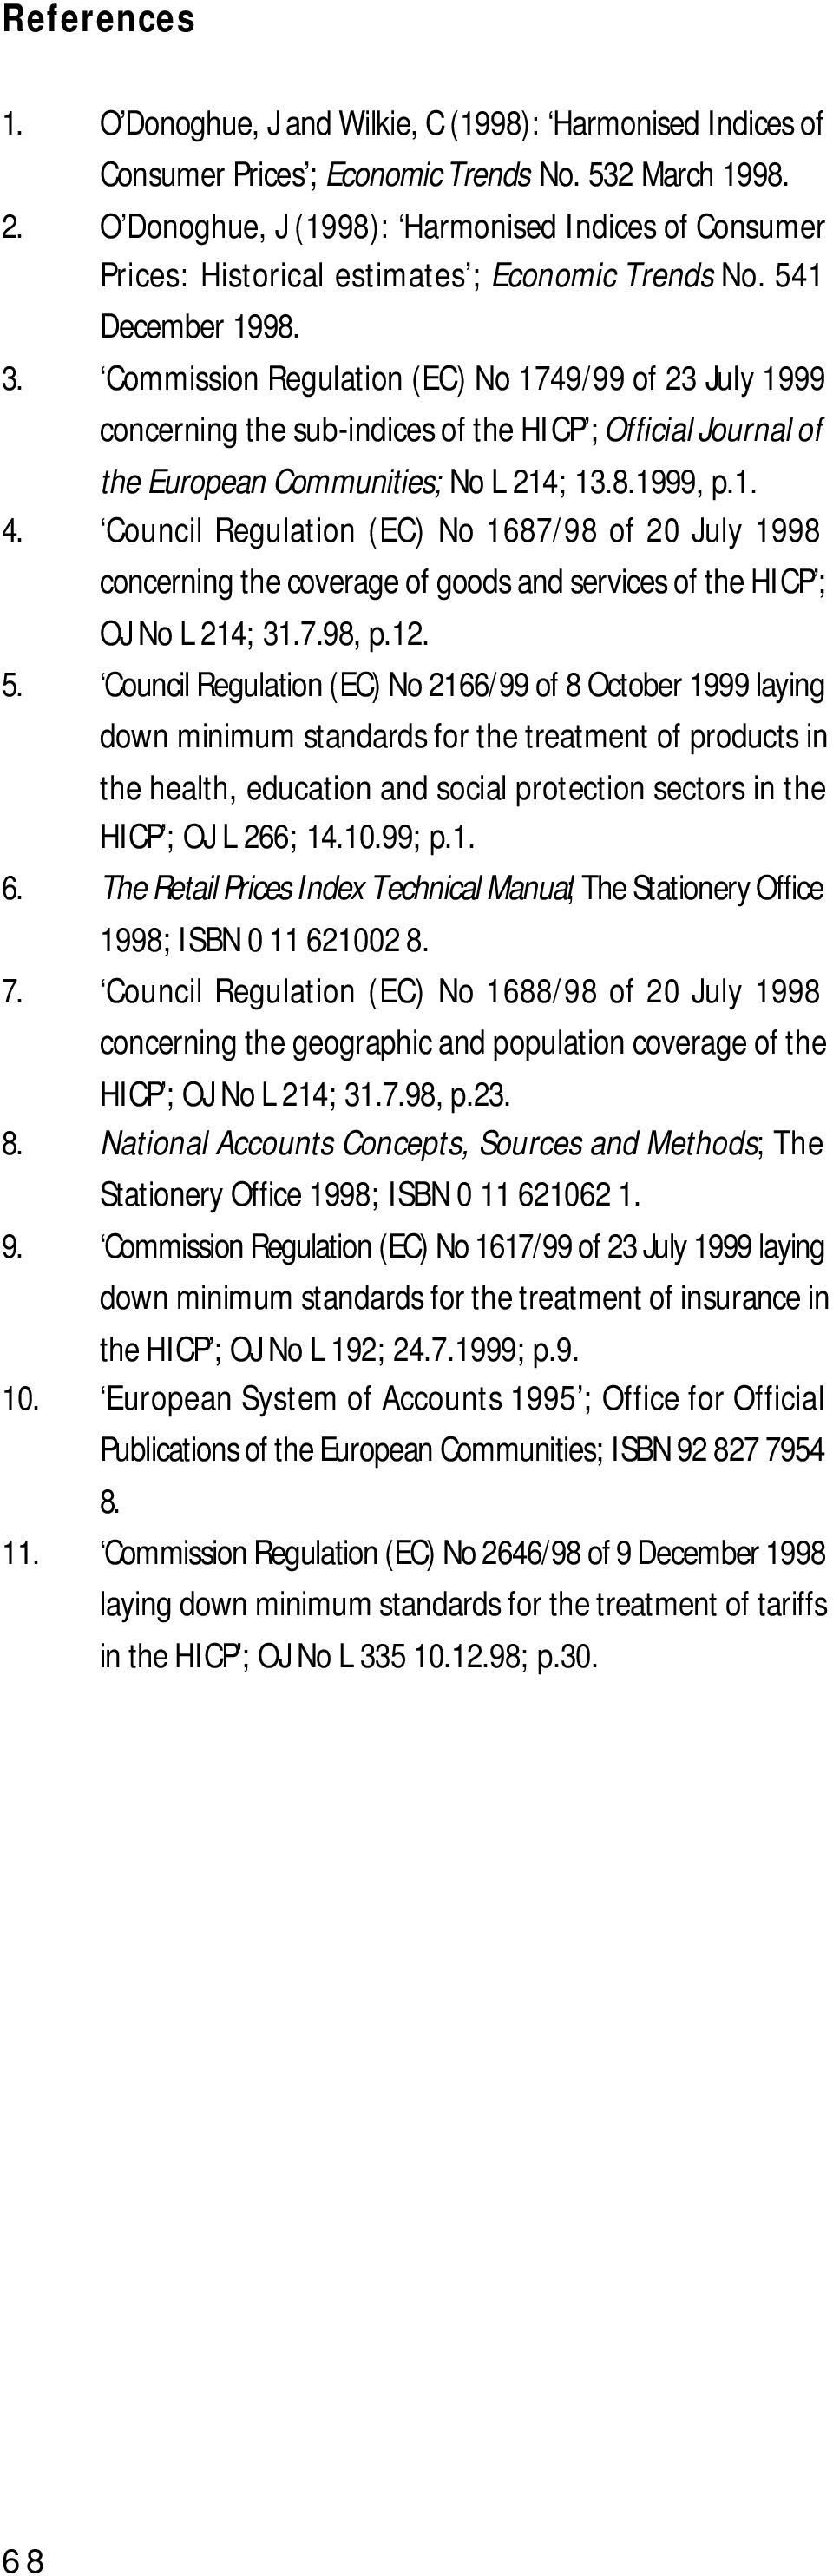 Commission Regulation (EC) No 1749/99 of 23 July 1999 concerning the sub-indices of the HICP ; Official Journal of the European Communities; No L 214; 13.8.1999, p.1. 4.